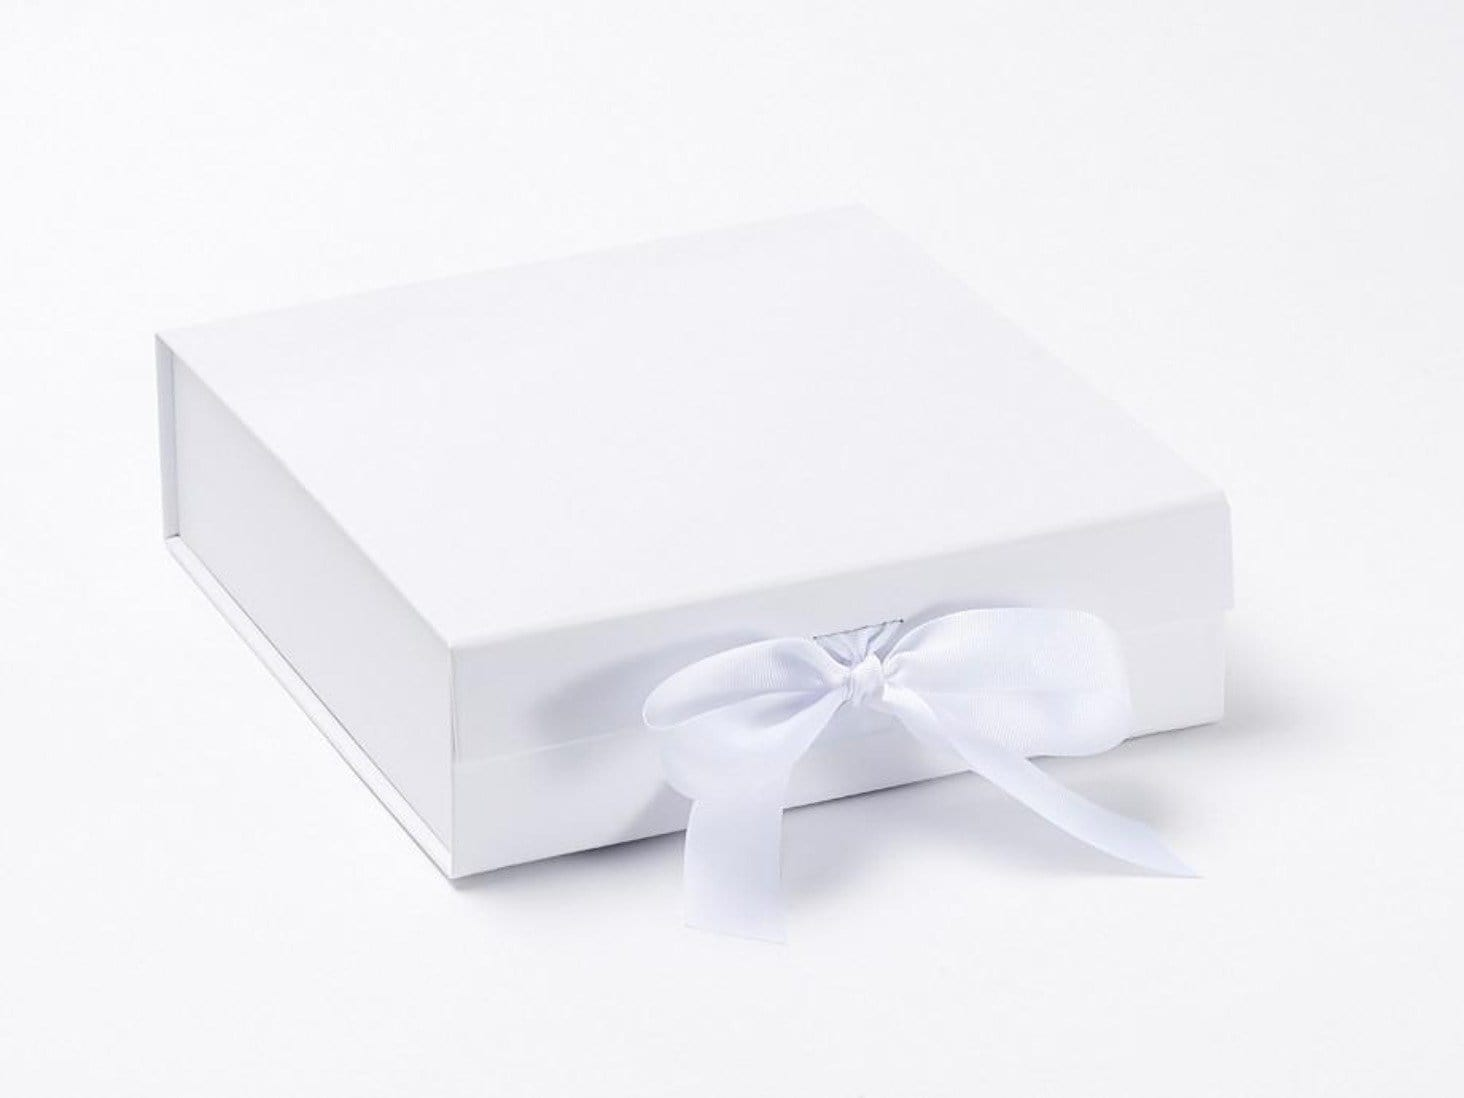 Medium White Folding Gift Box or Keepsake Box with fixed grosgrain ribbon